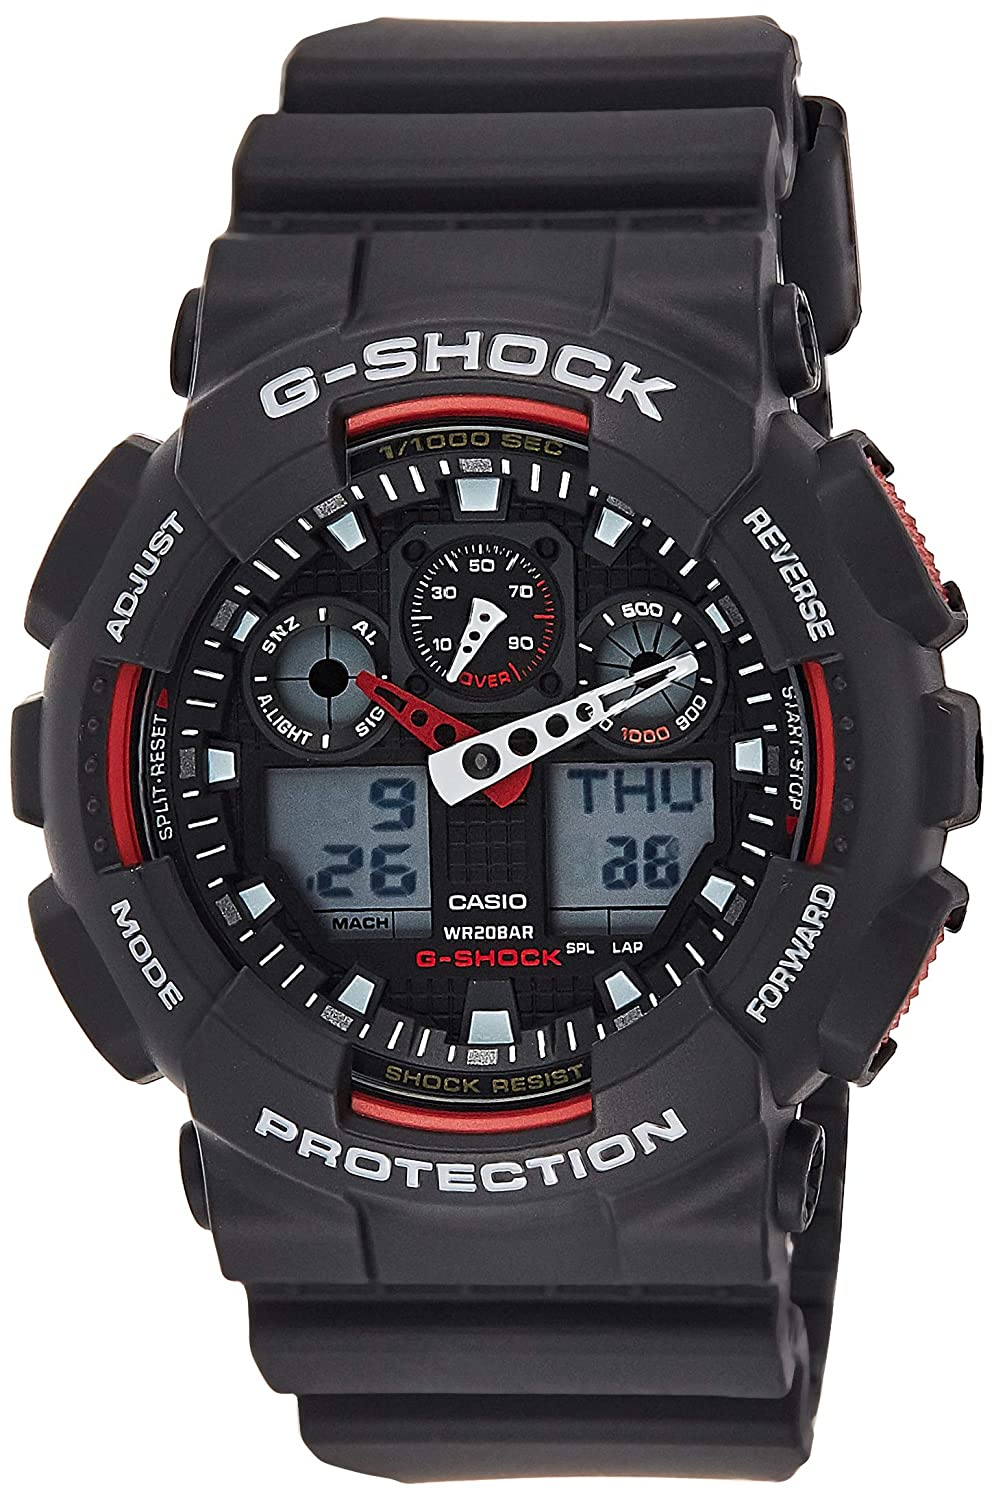 Casio G-Shock Ana-digi World Time Black Dial Men s watch GA100-1A4